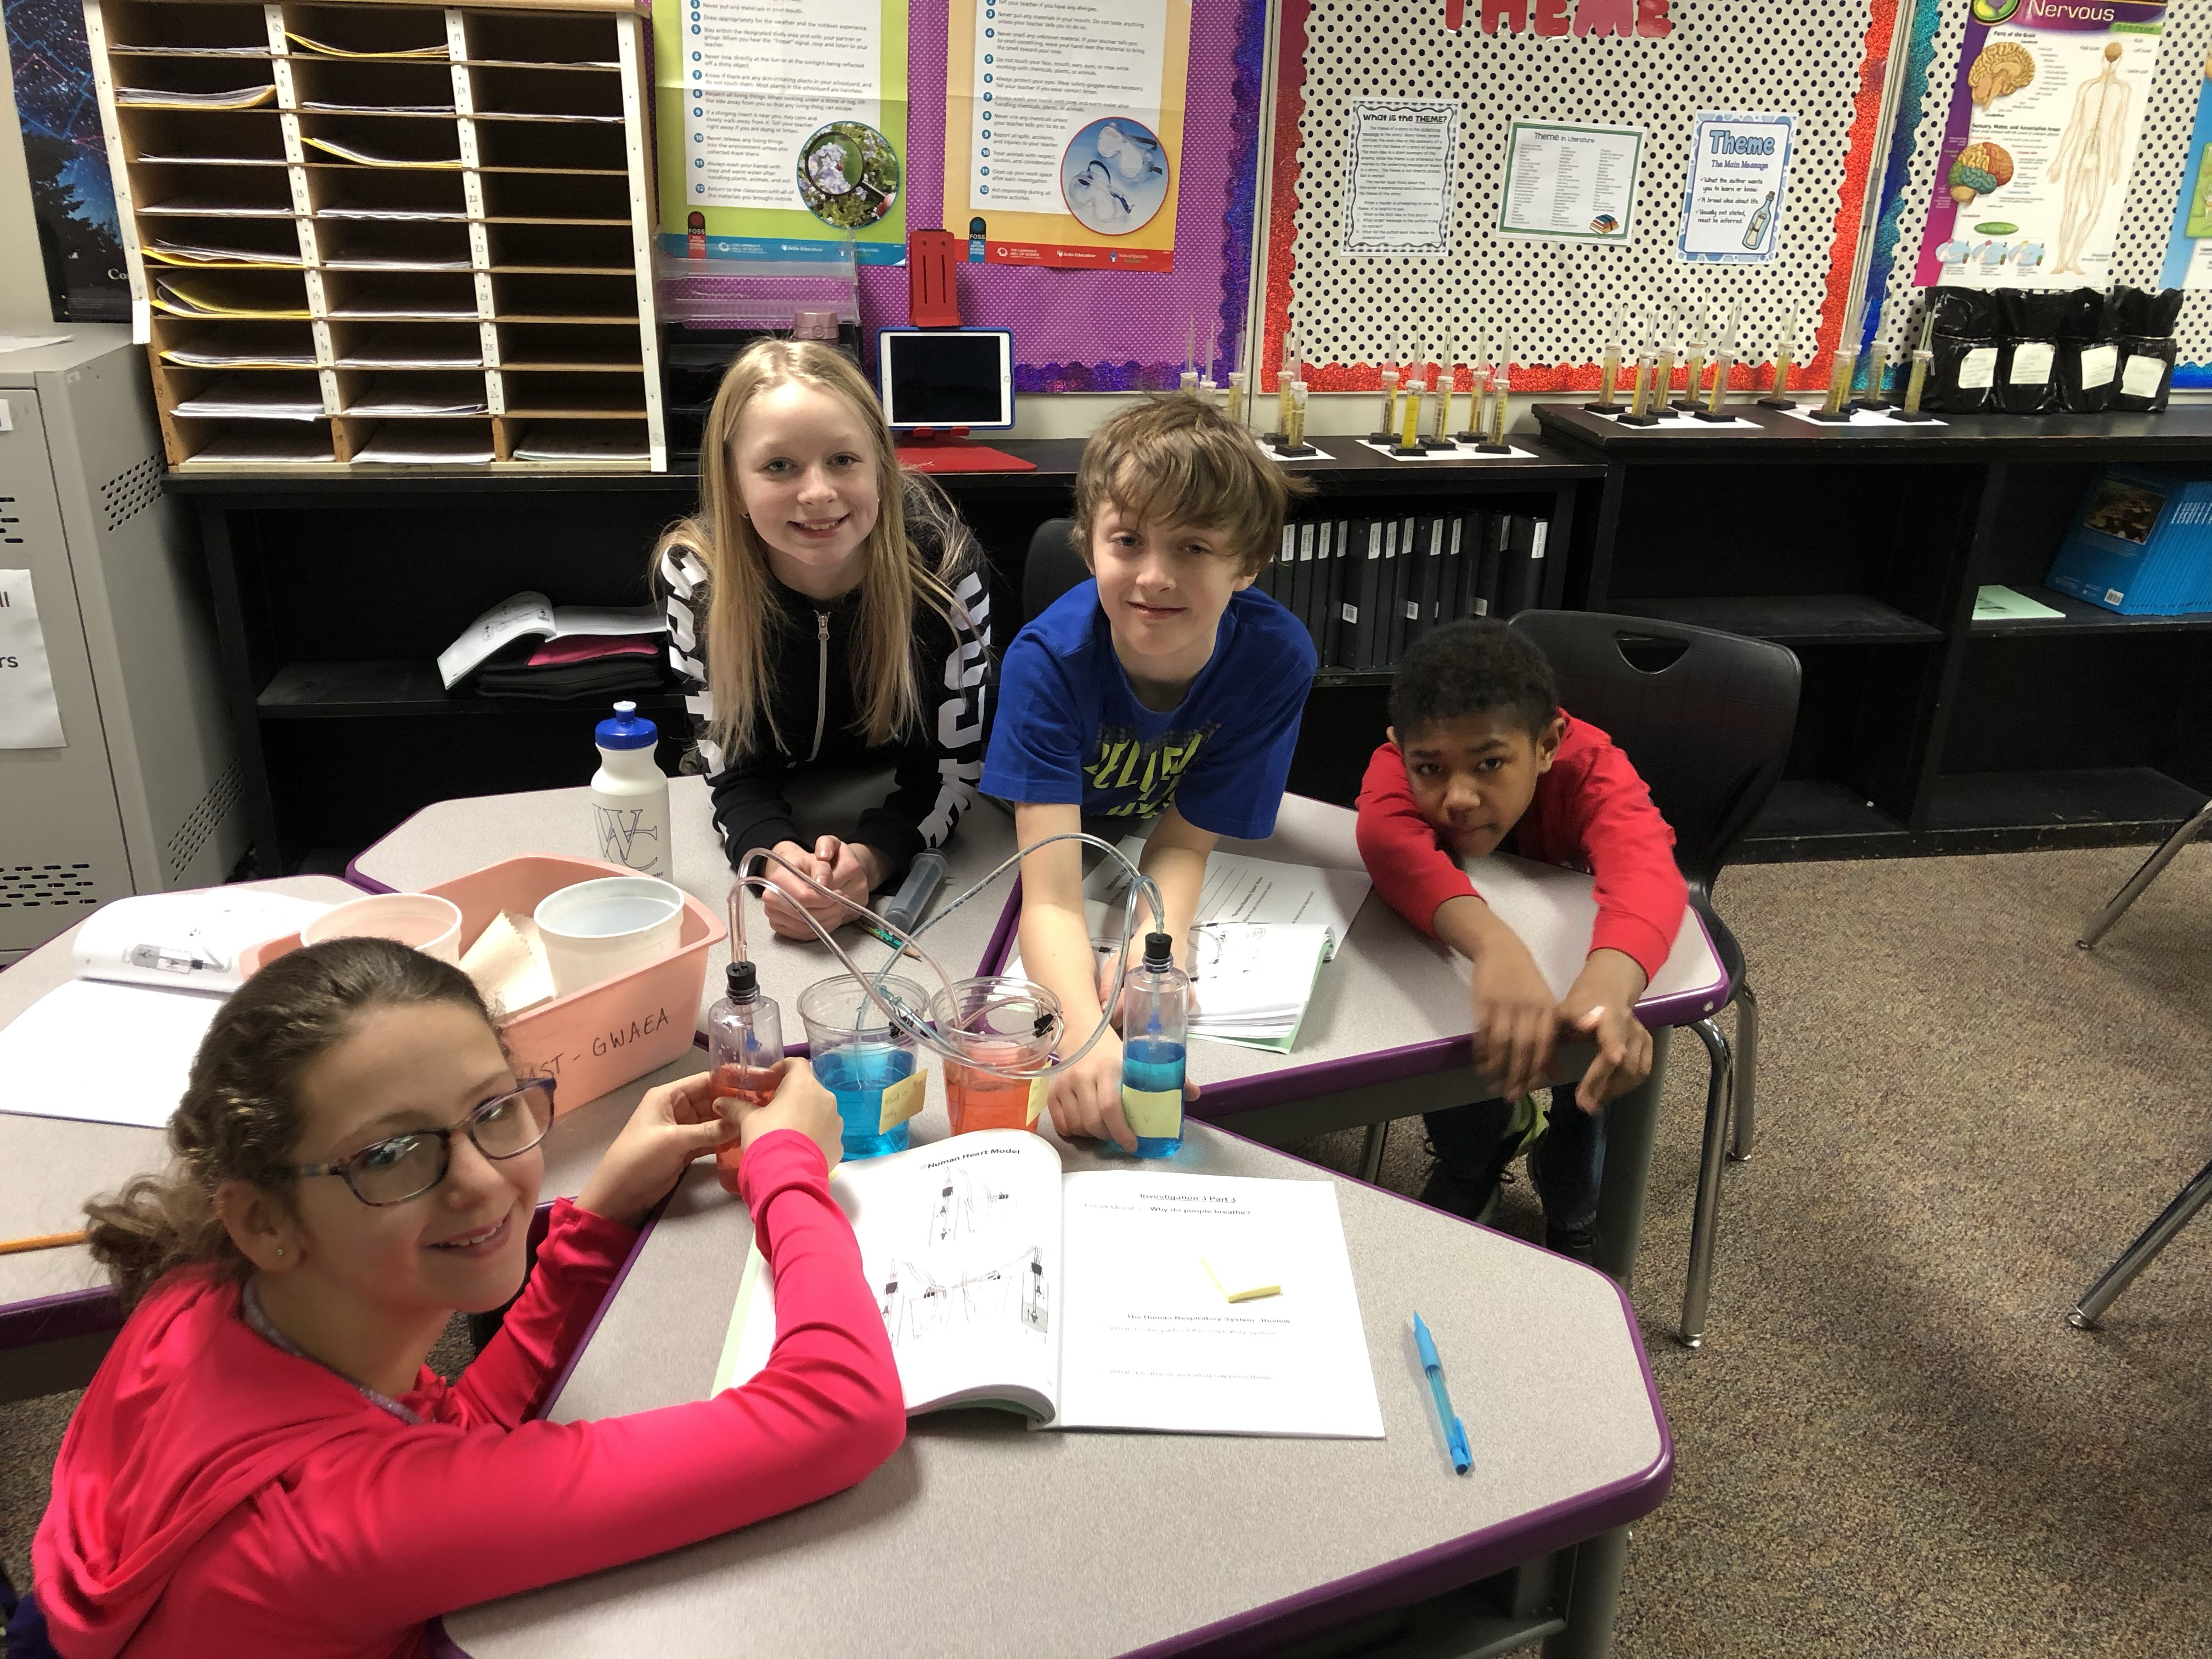 Fifth graders work together to create a heart model